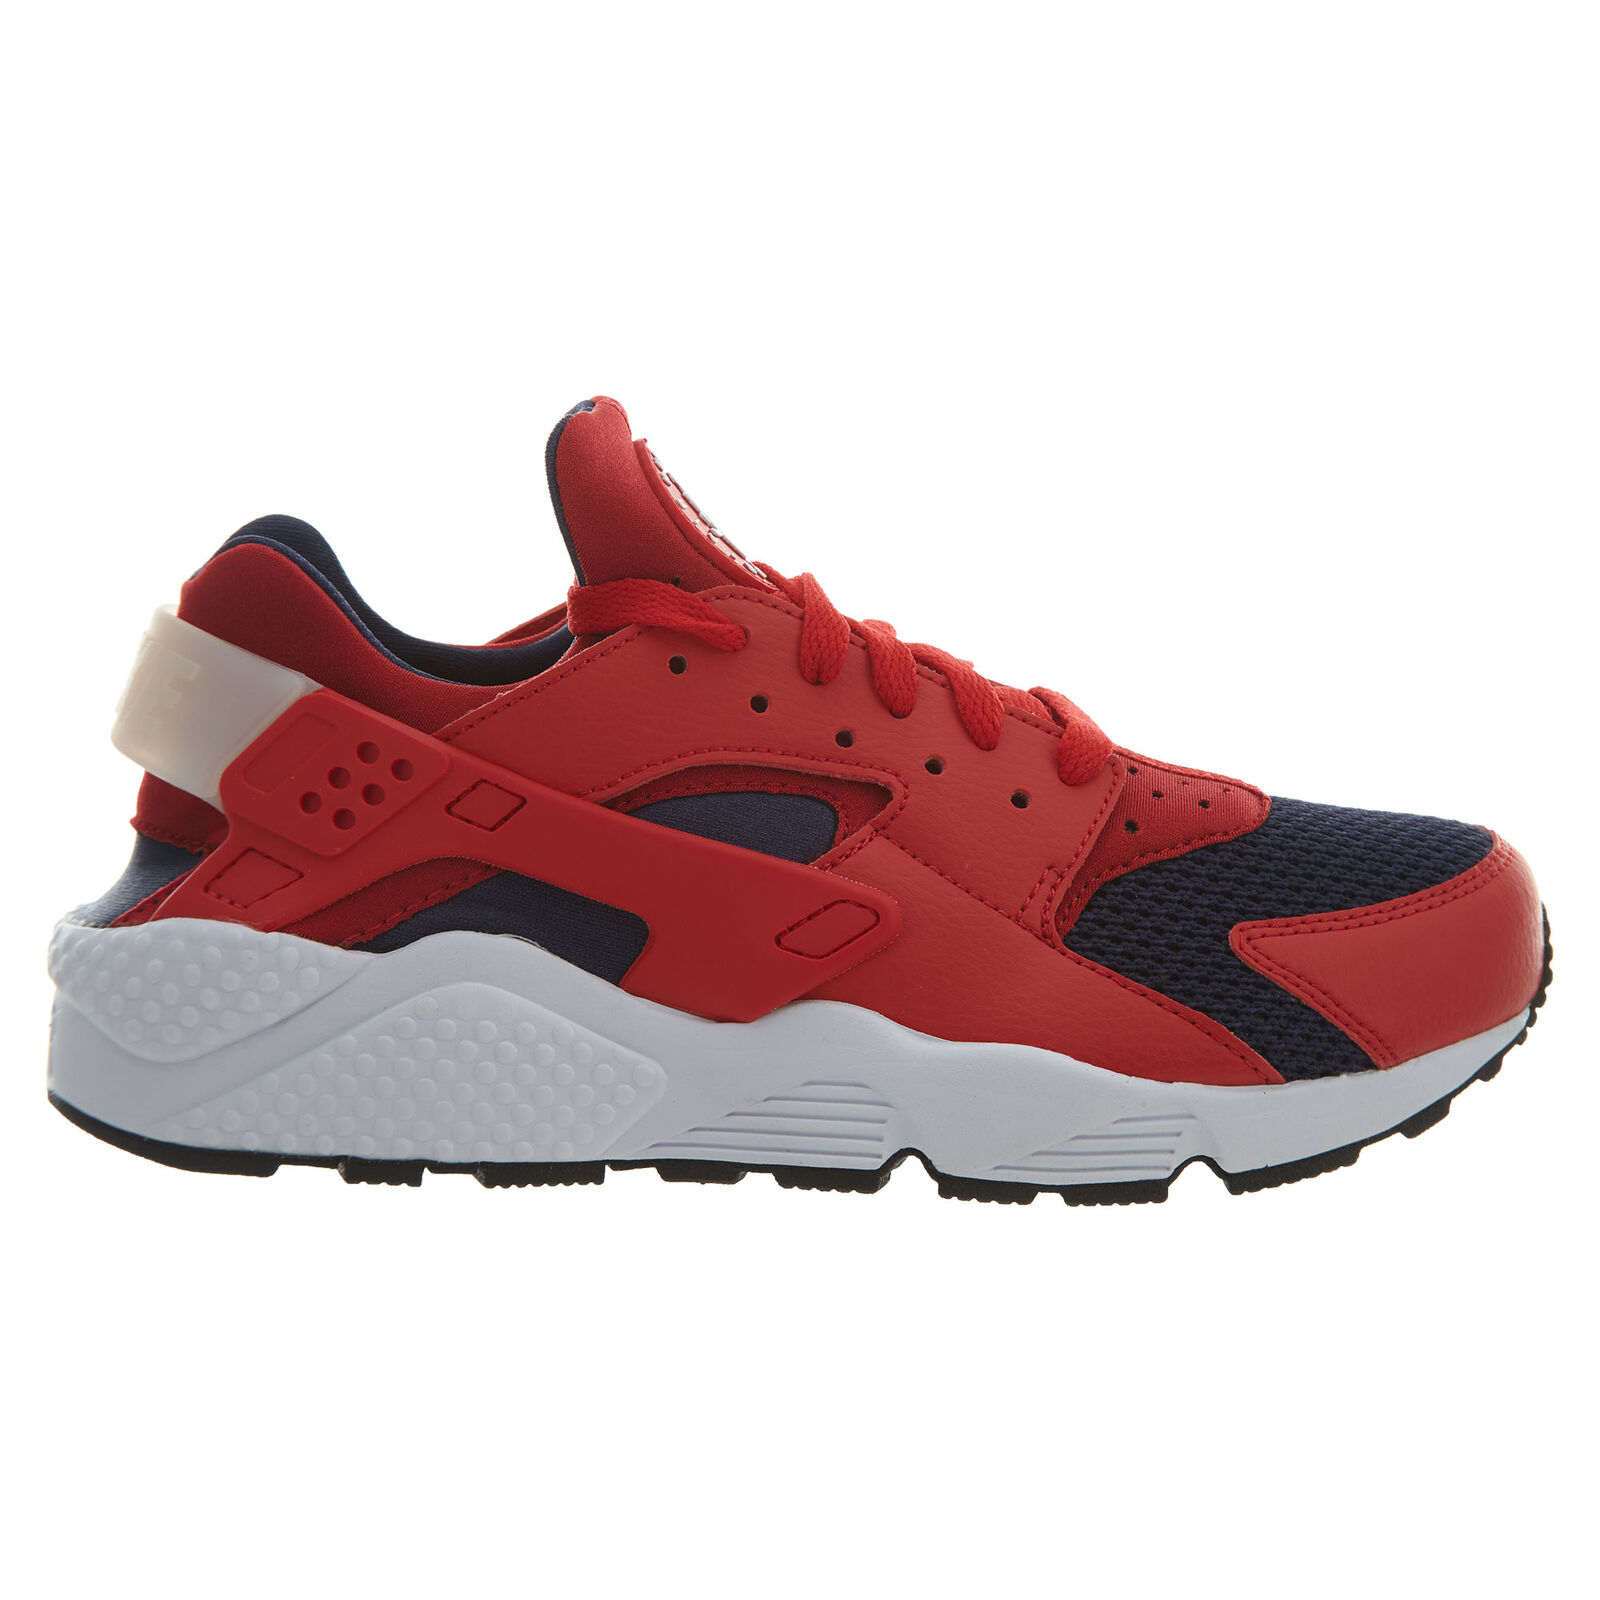 Nike Air Huarache Varsity Pack Mens 318429-611 Red White Running Shoes Size 11